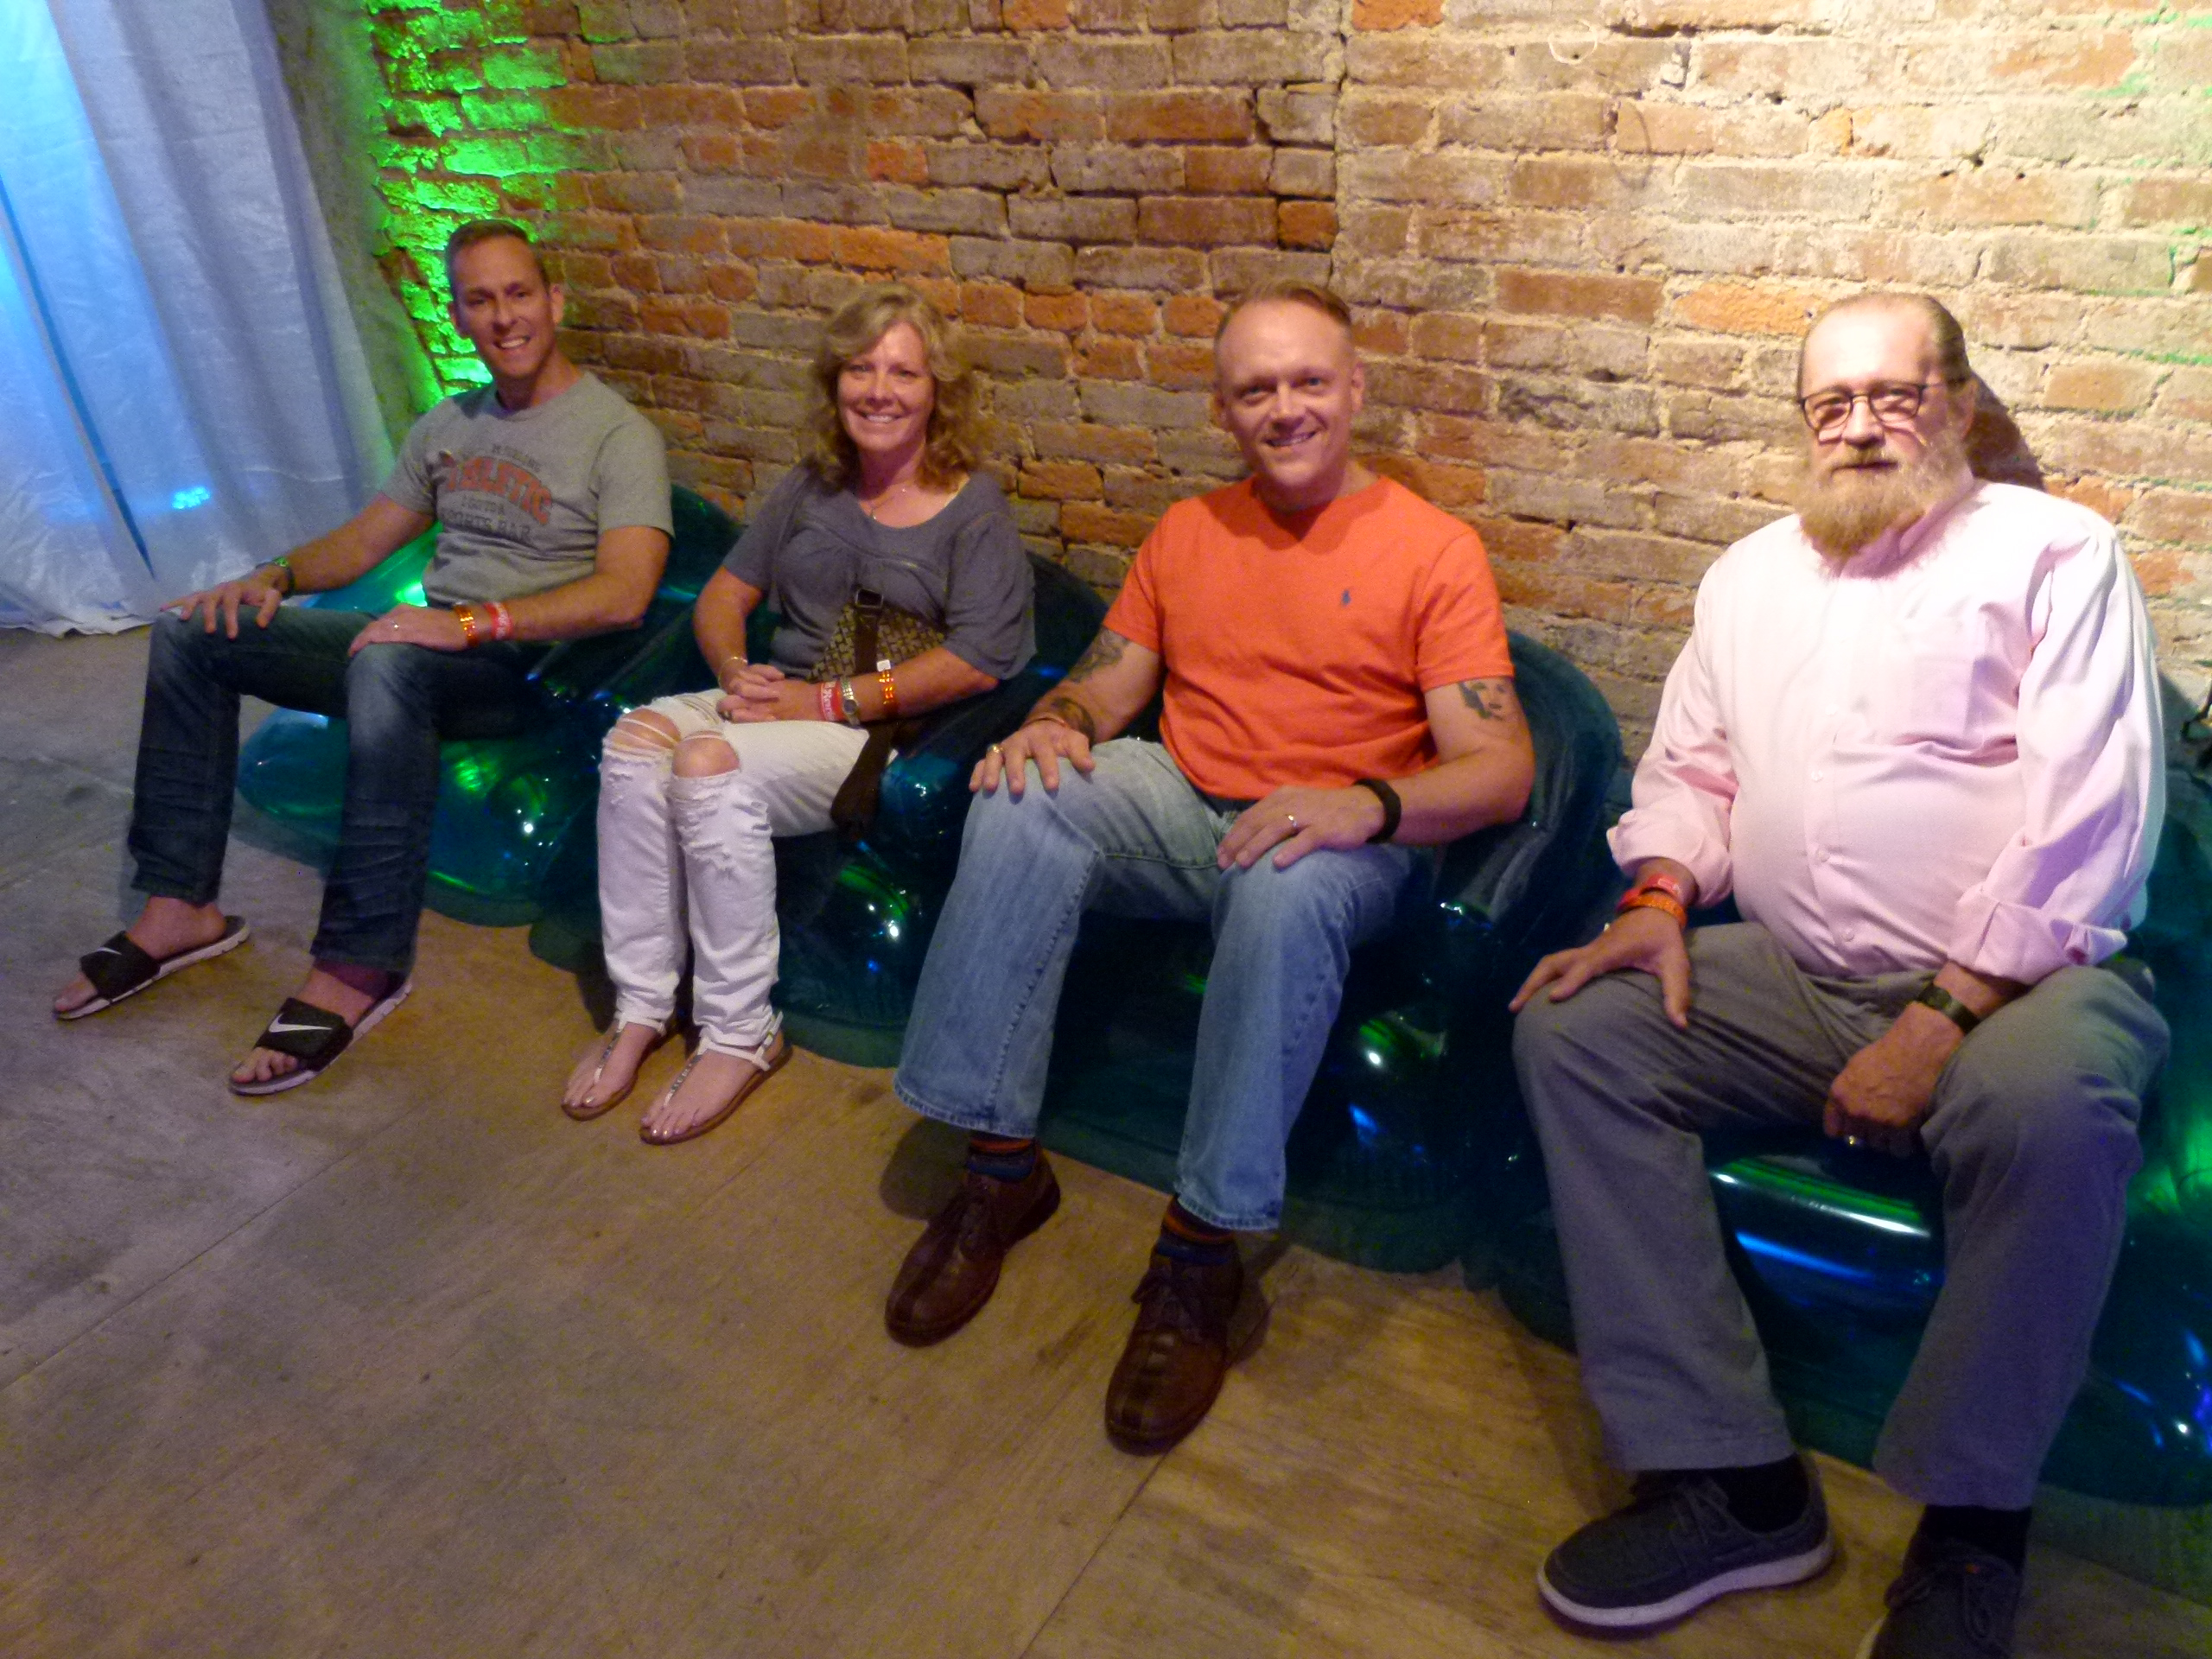 Guests relaxing on blue bubble chairs: (l. to r.) Eric Horwith, Chris Schuette, John Komisary, and Dennis Wilson.